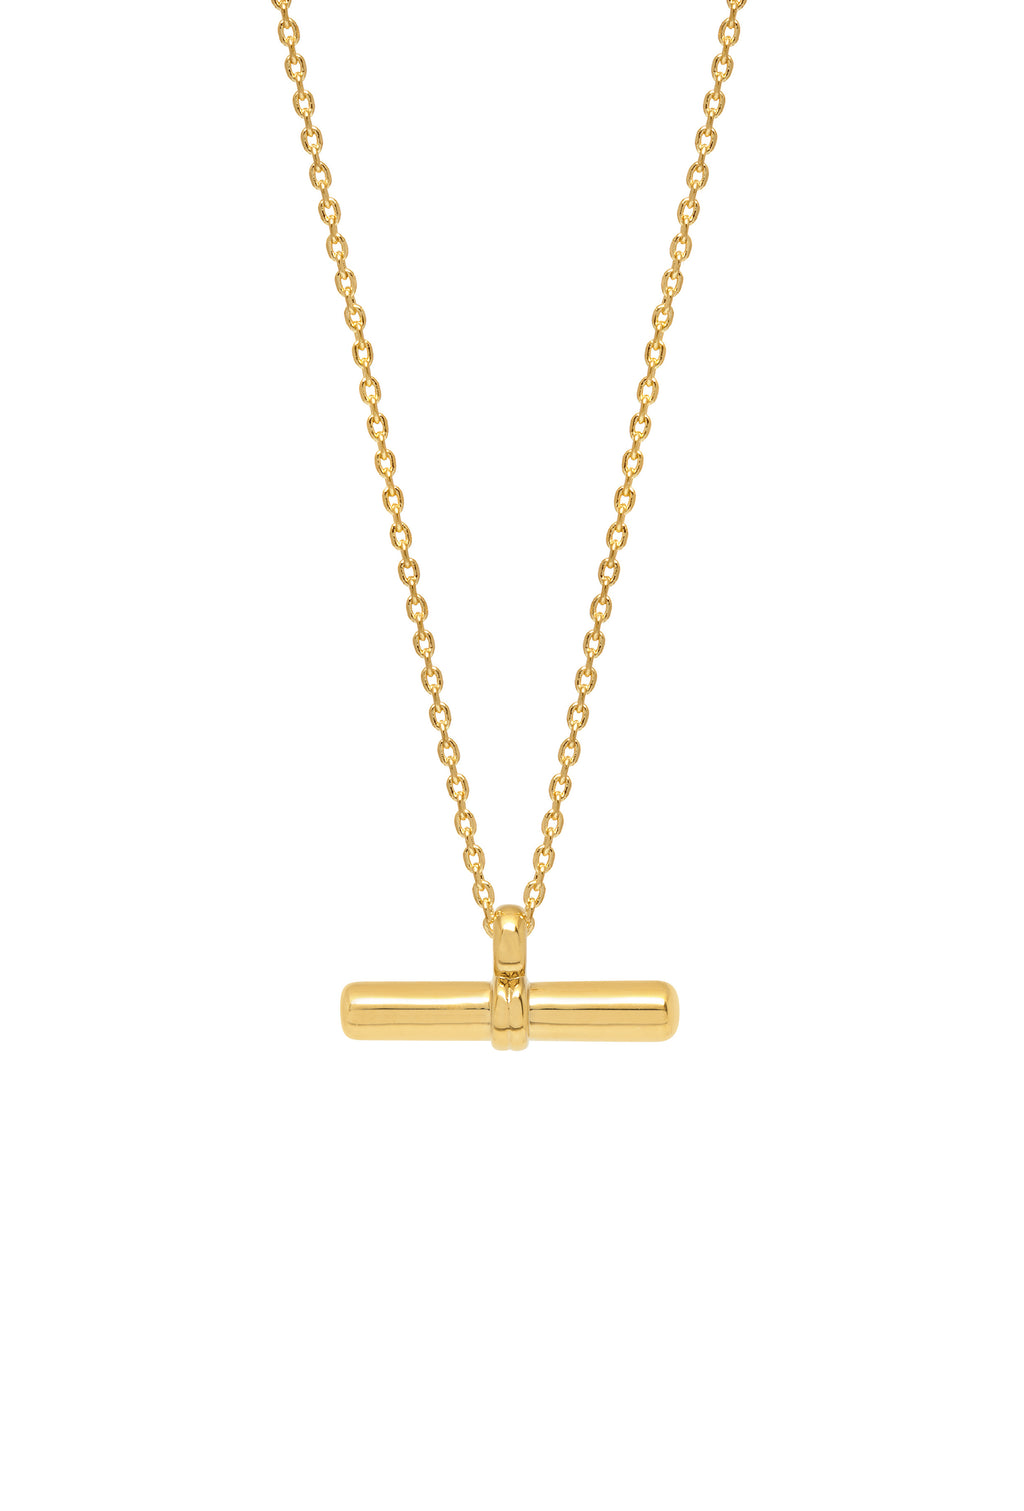 Estella Bartlett - T Bar Gold Plated Pendant